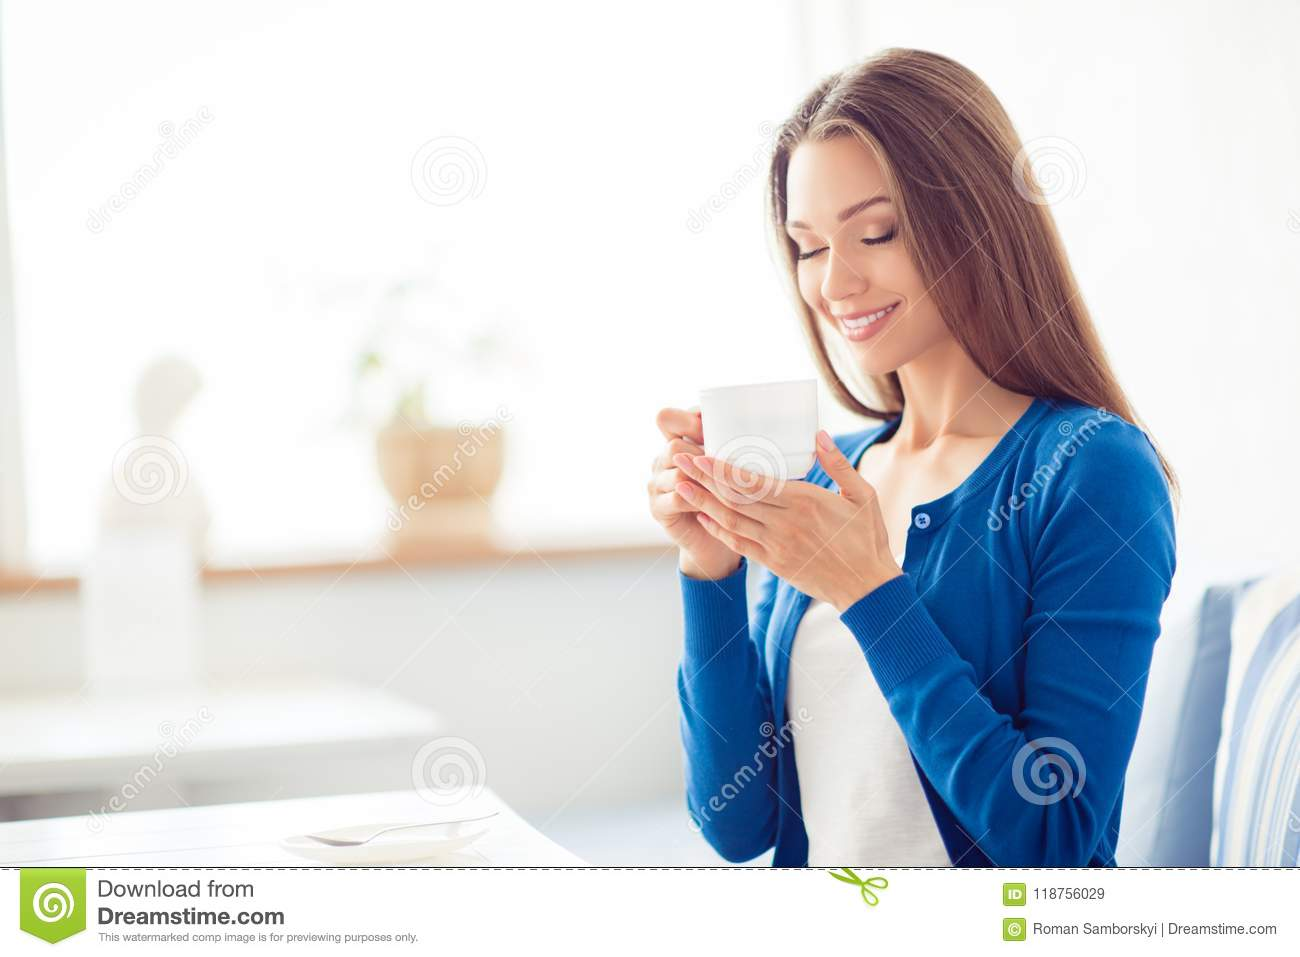 Good morning! Close up portrait of charming dreamy brunette young girl drinking coffee. She is sleepy and relaxed, in casual blue